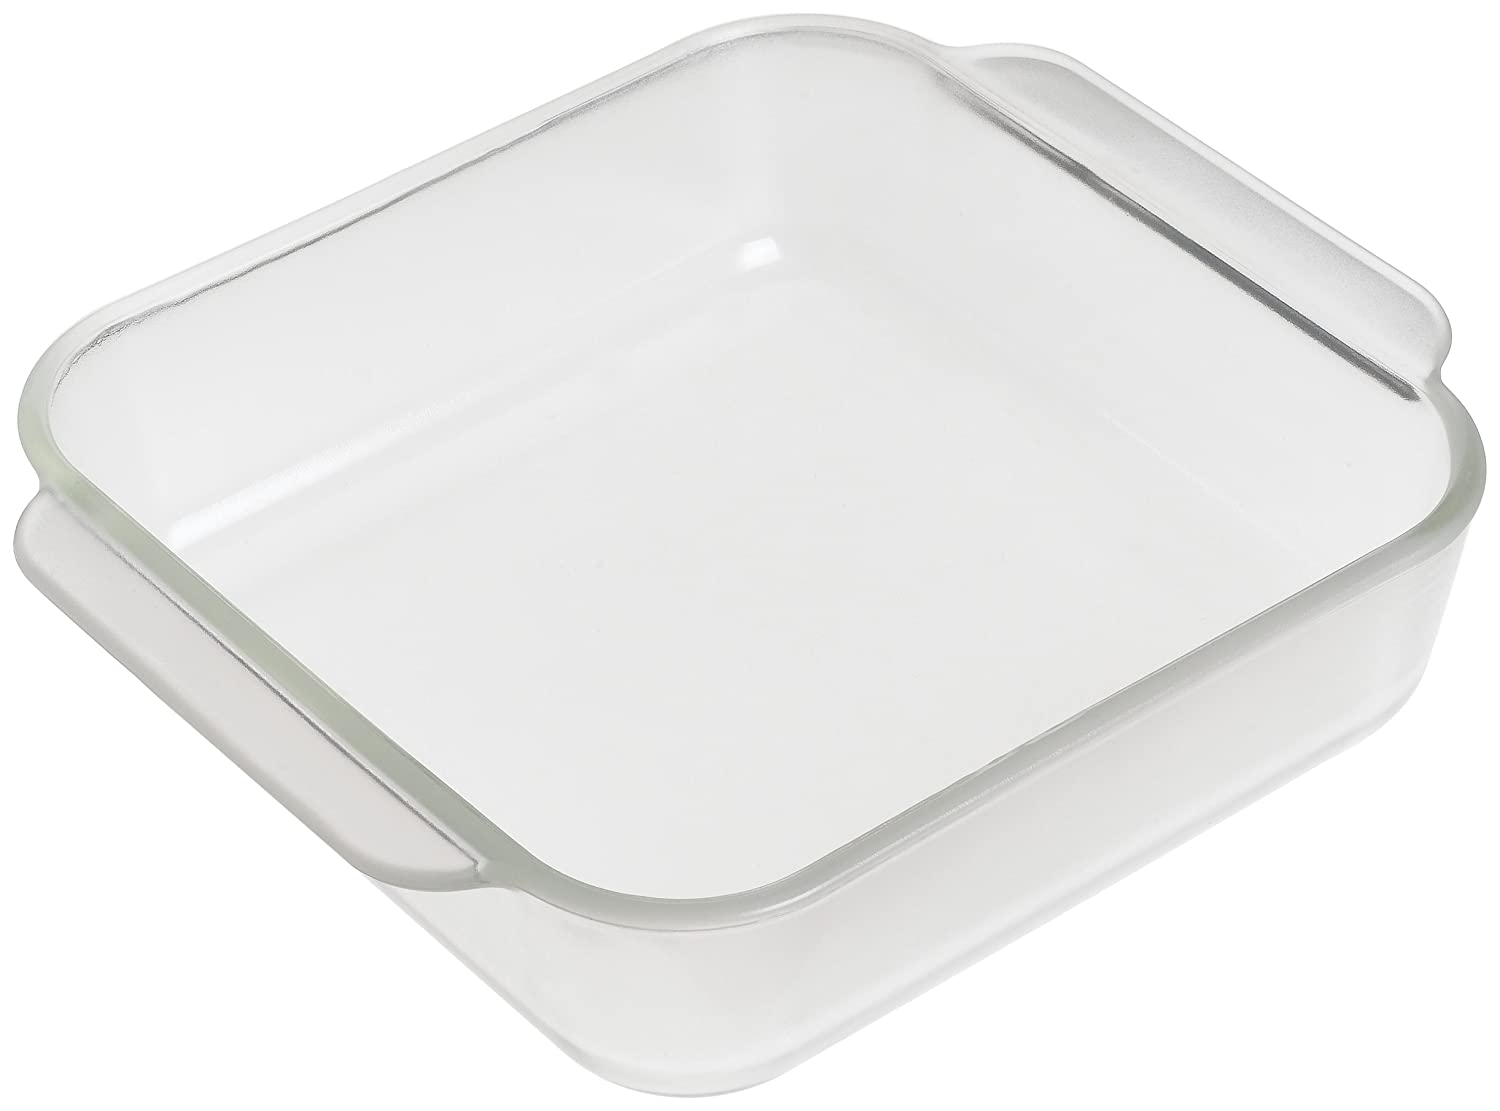 Green Apple Cooking Square Non-stick Baking Dish Lien & Company R710-8